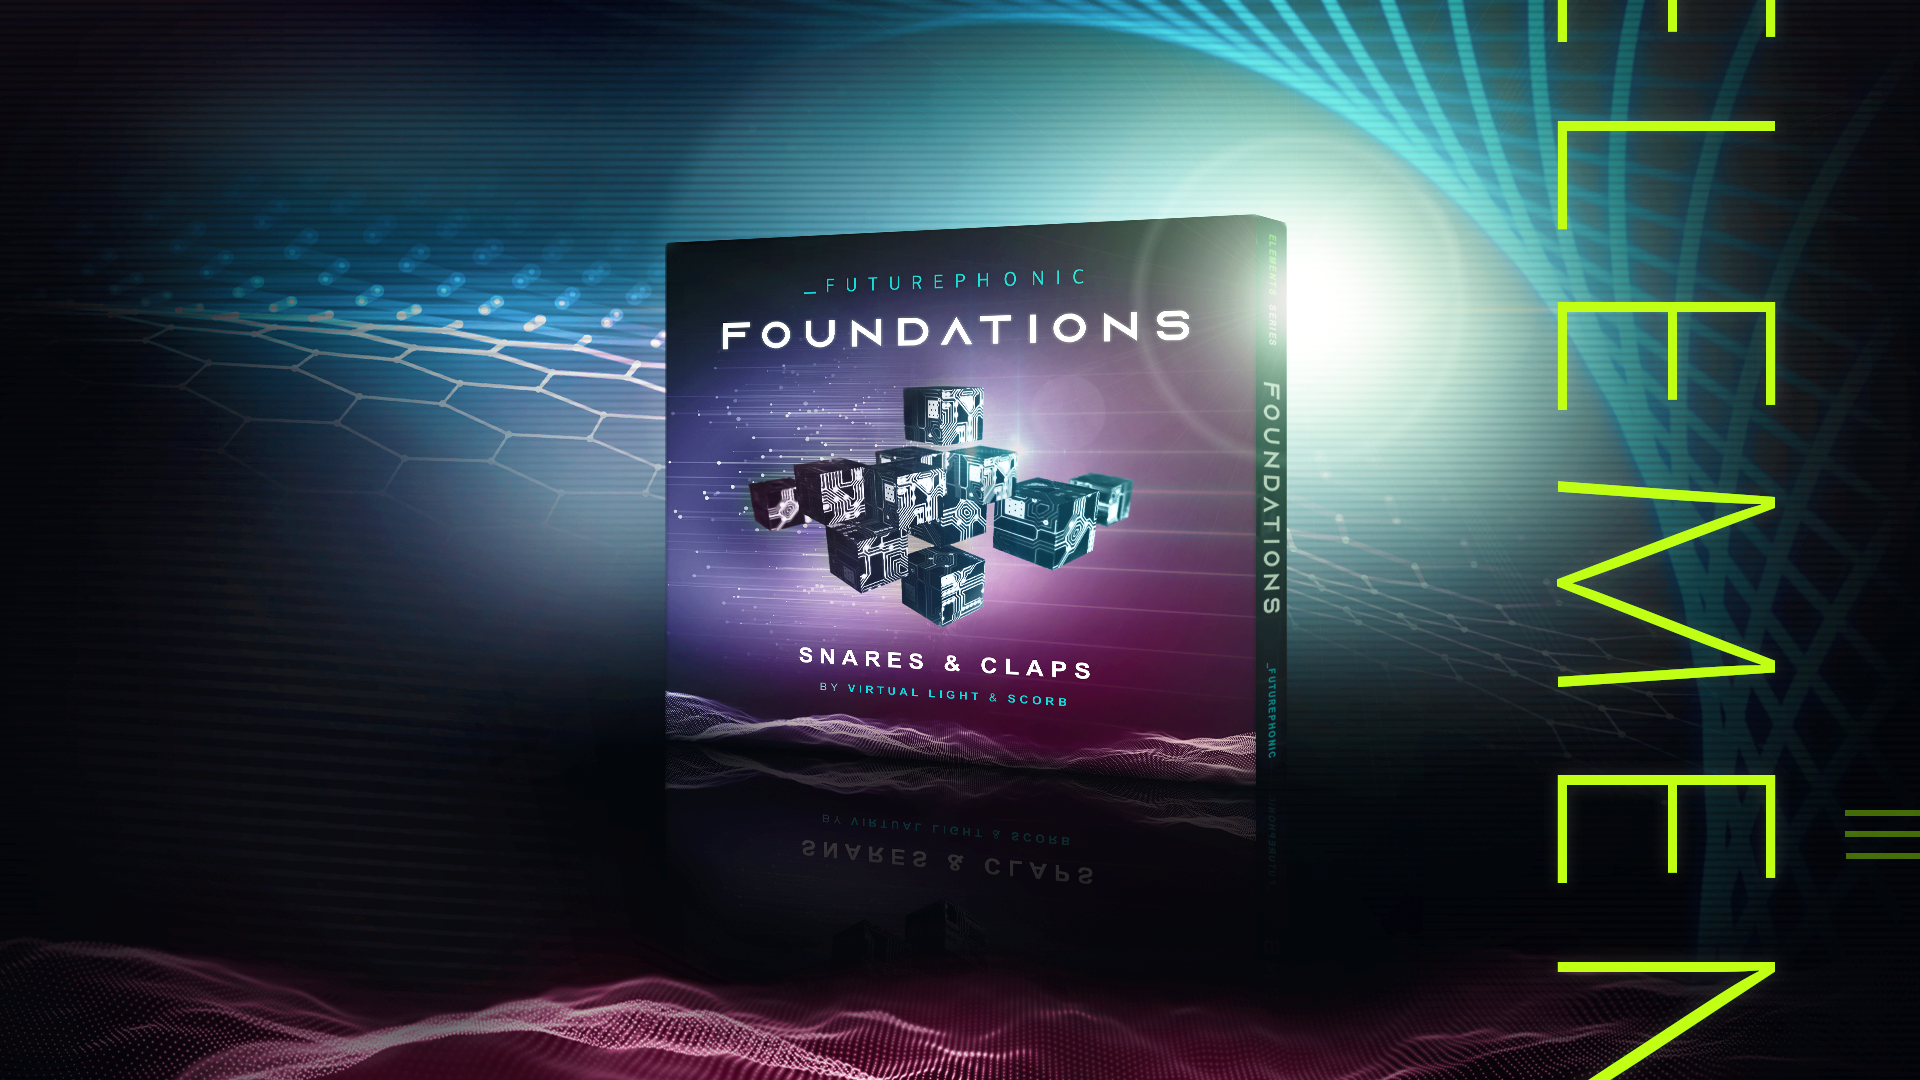 Foundations - Snares & Claps by Virtual Light and Scorb